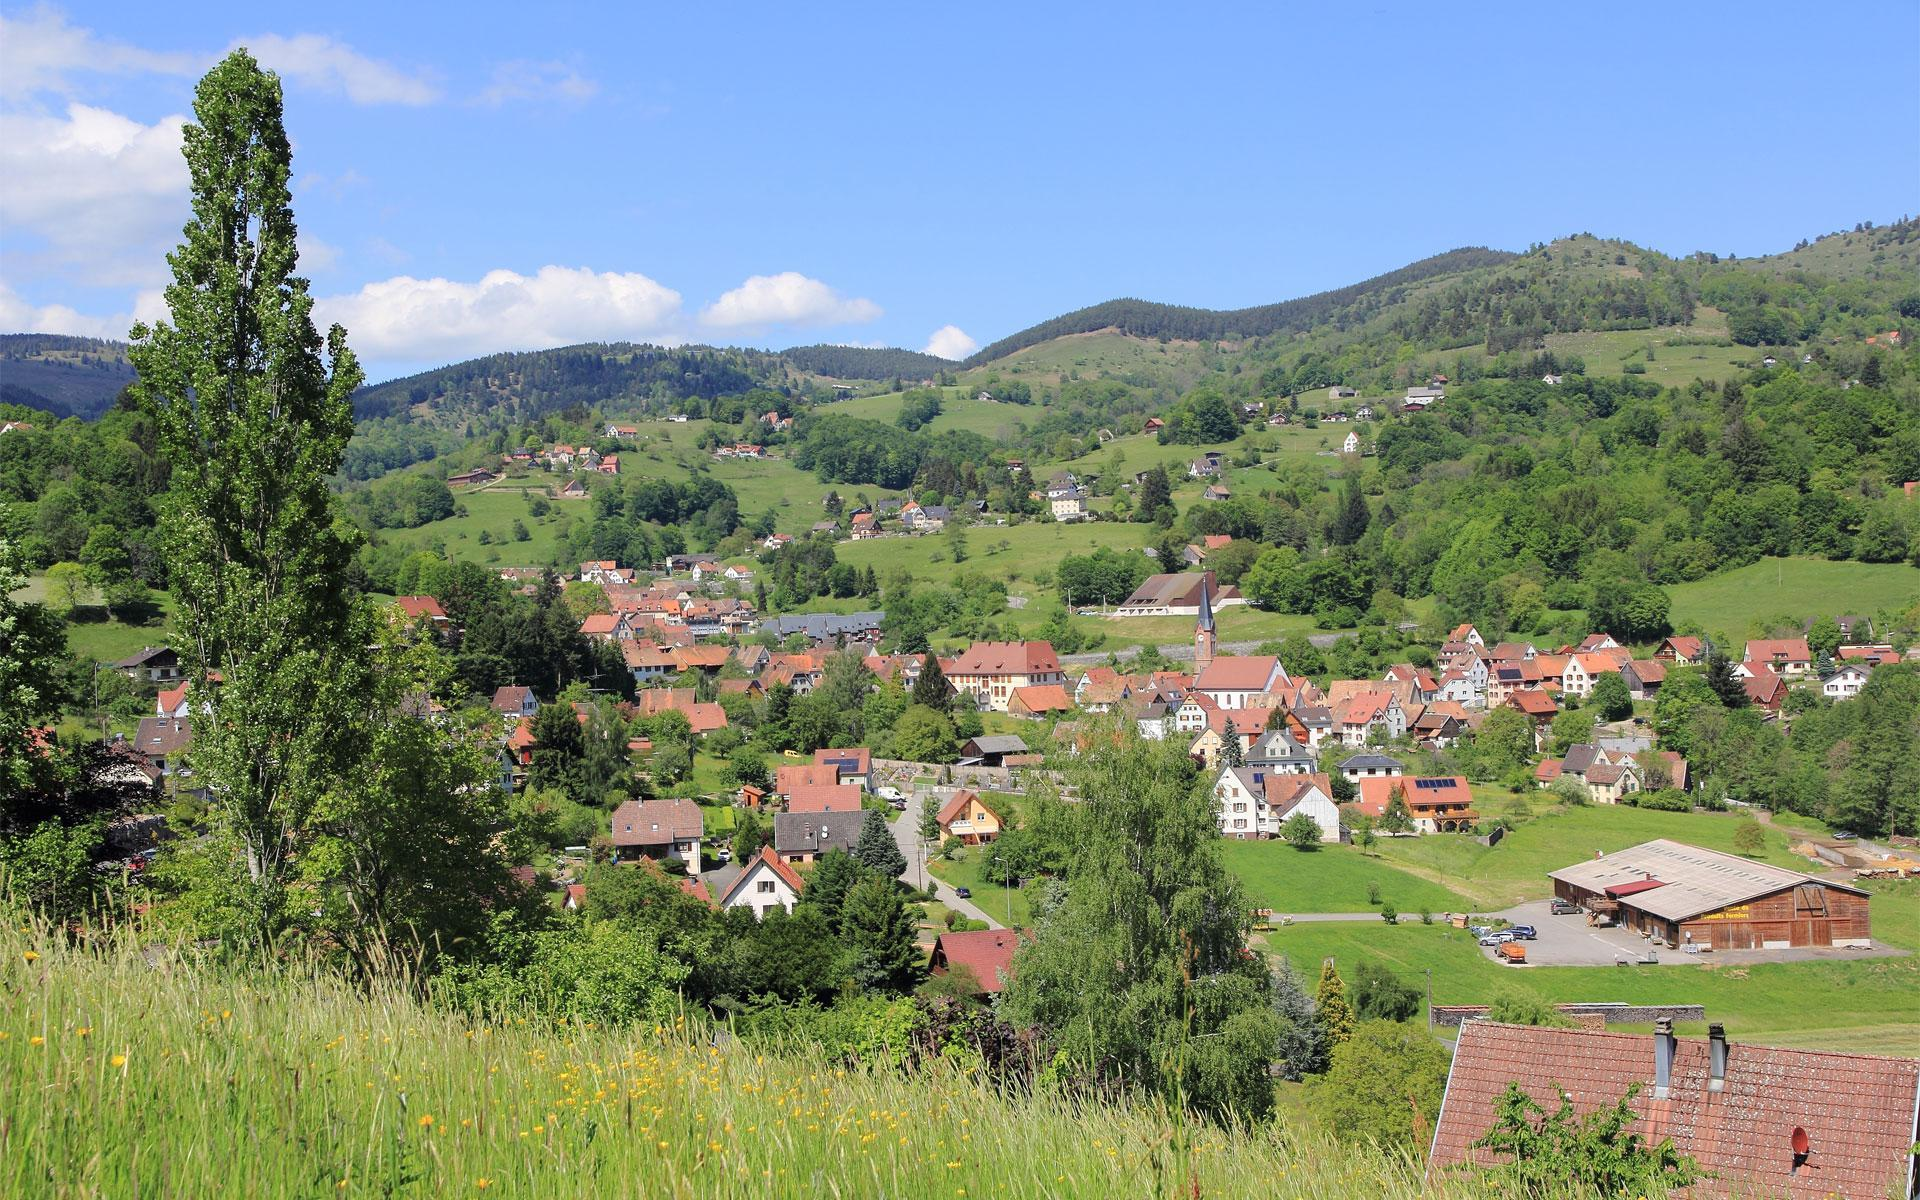 Soulteren: one of the villages in the Munster Valley